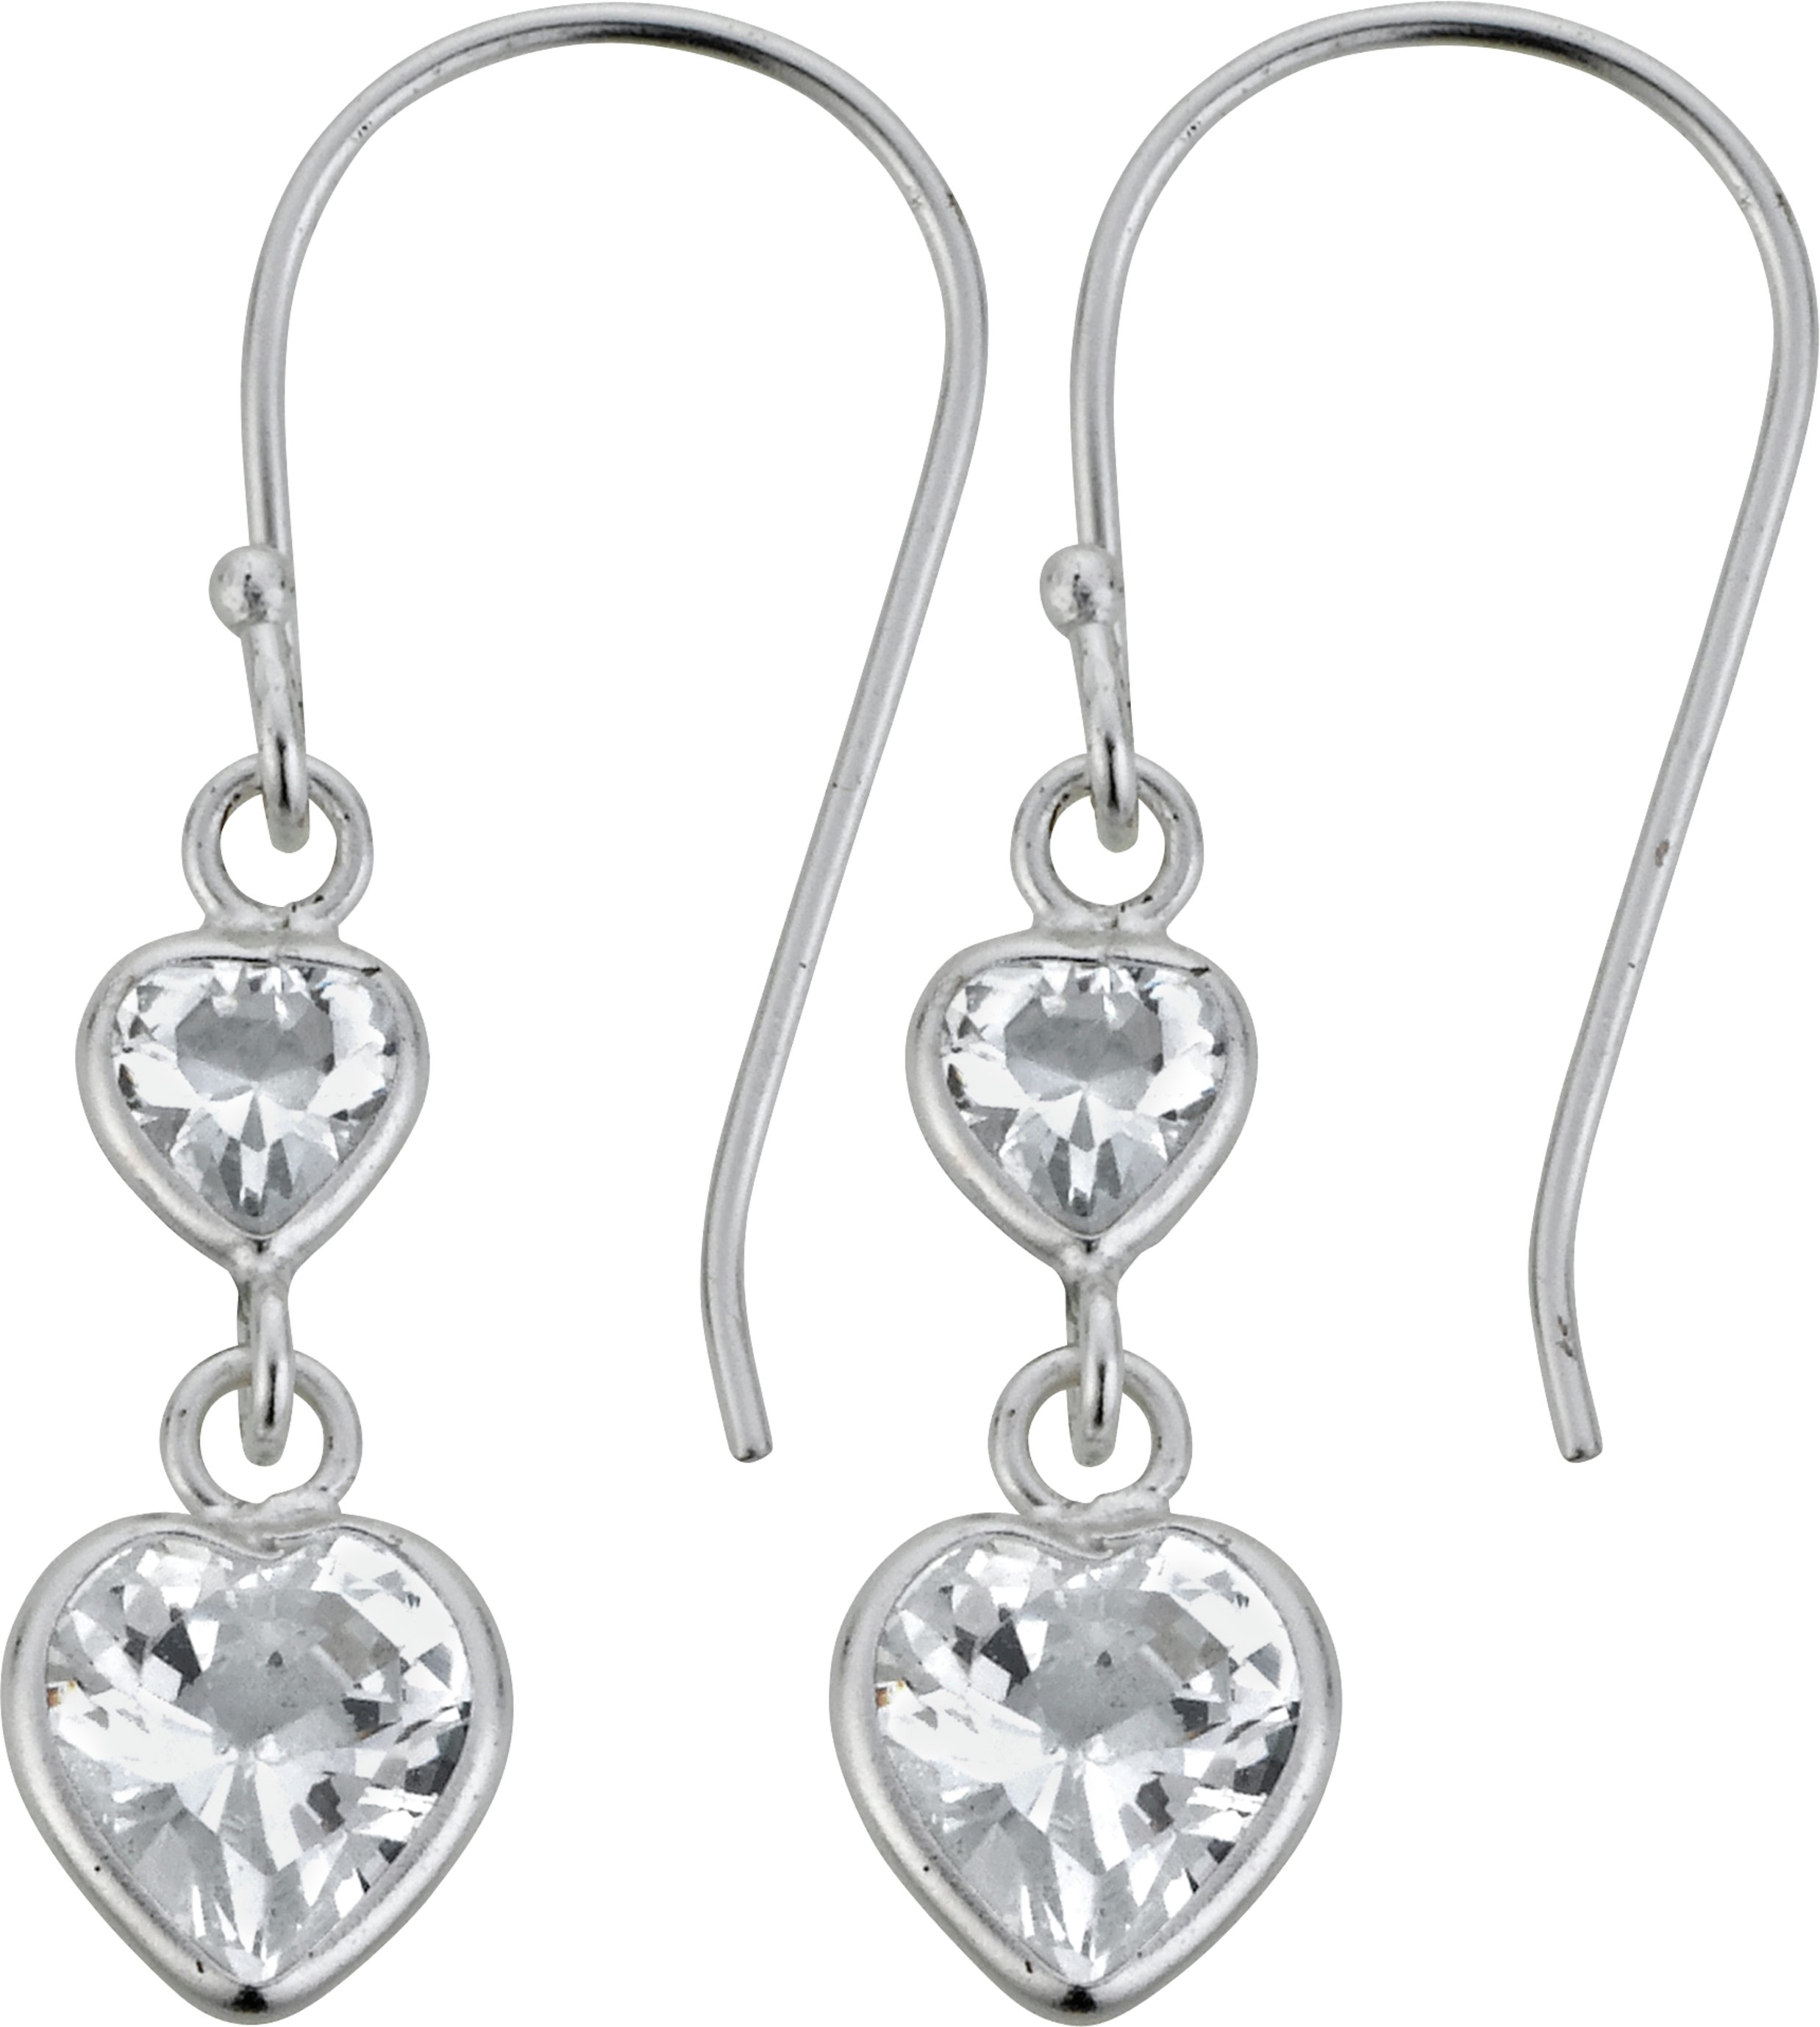 Revere Sterling Silver Cubic Zirconia Heart Drop Earrings